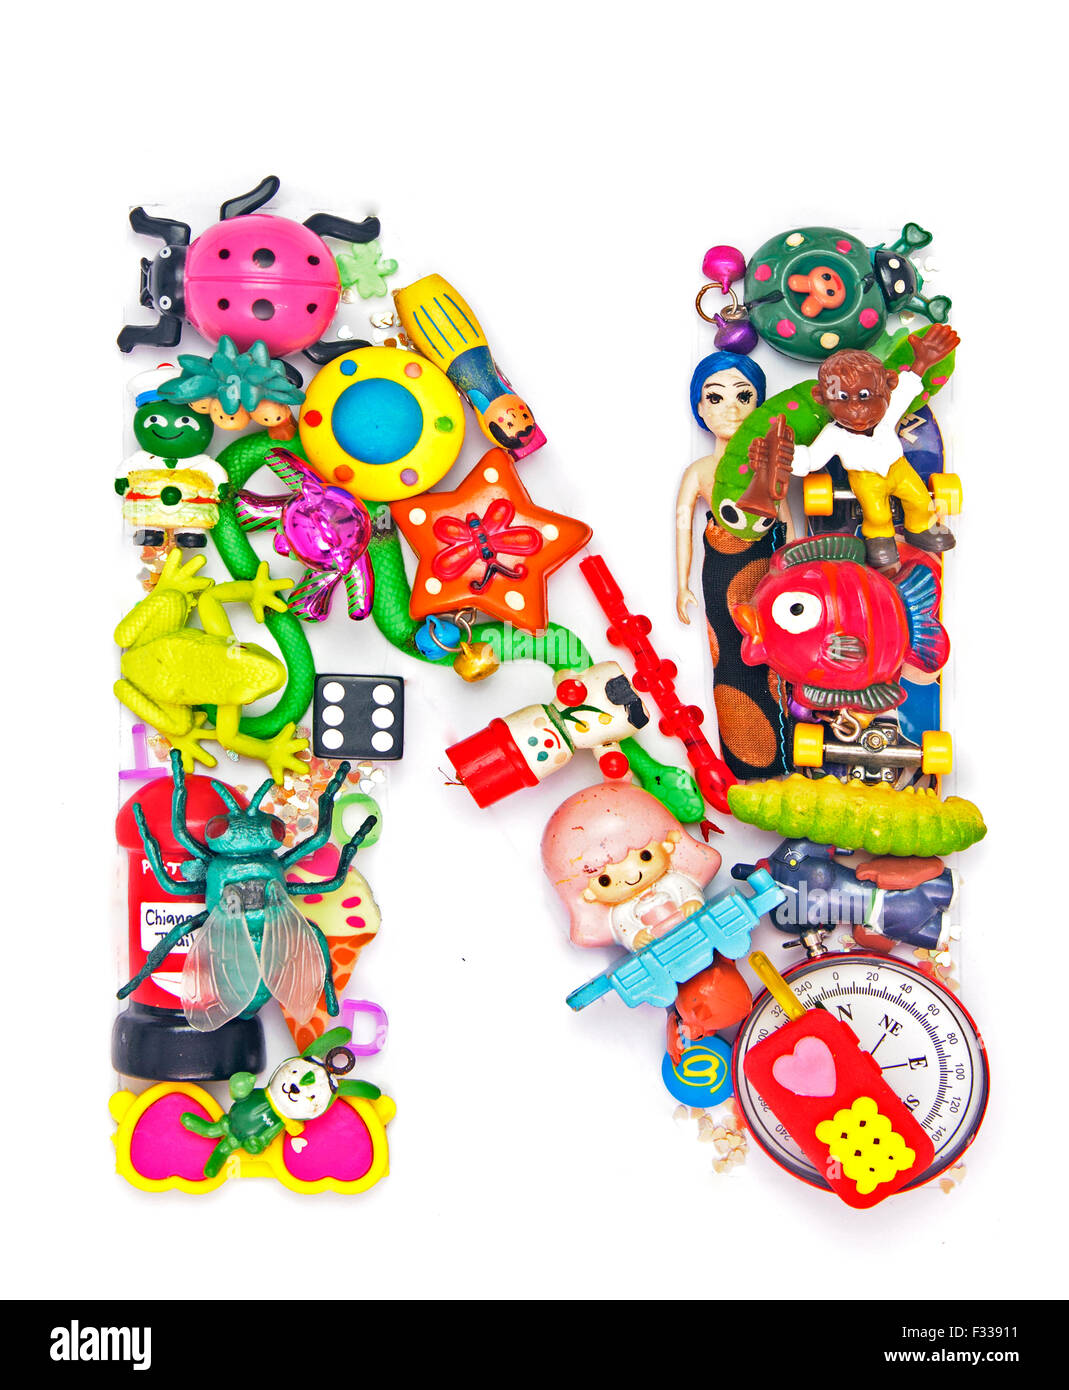 The Letter N Made From Small Toys Stock Photo 87968749 Alamy